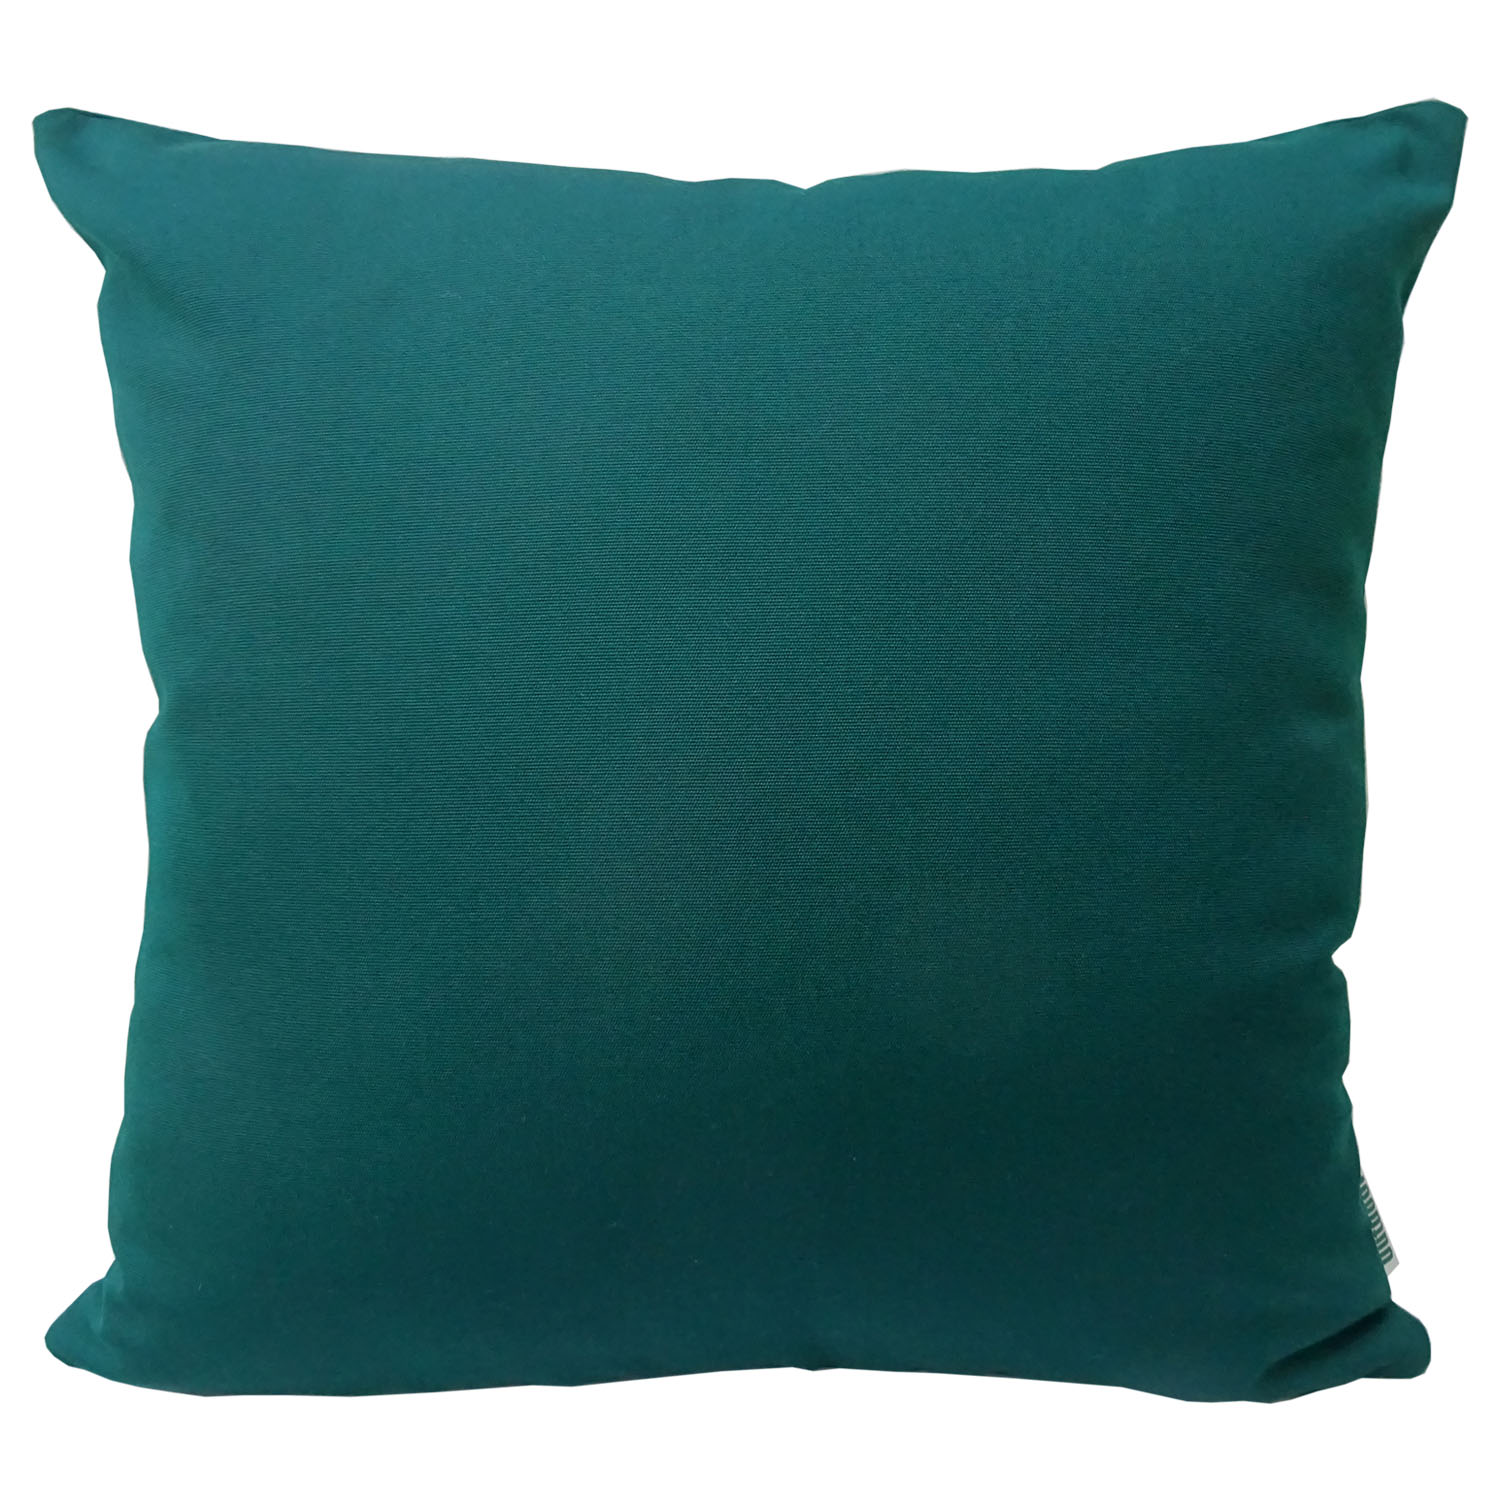 forest green 45x45cm outdoor cushion